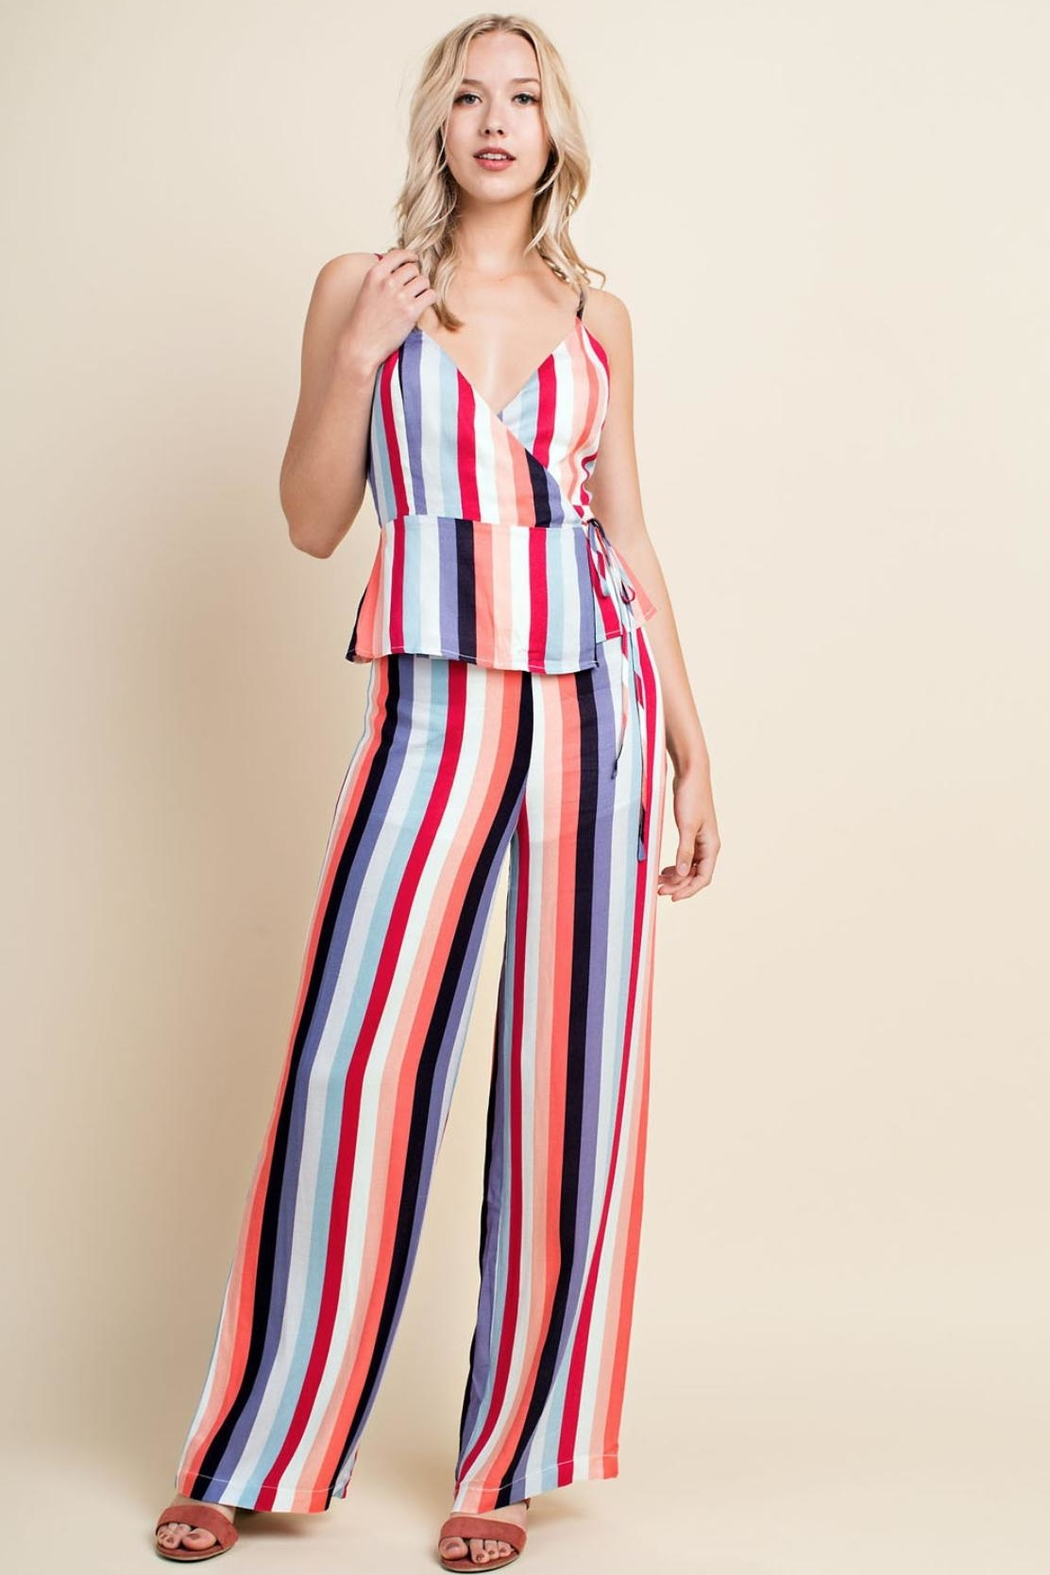 efbce22d1b11 honey belle Bold Striped Pants from Florida by Apricot Lane St ...